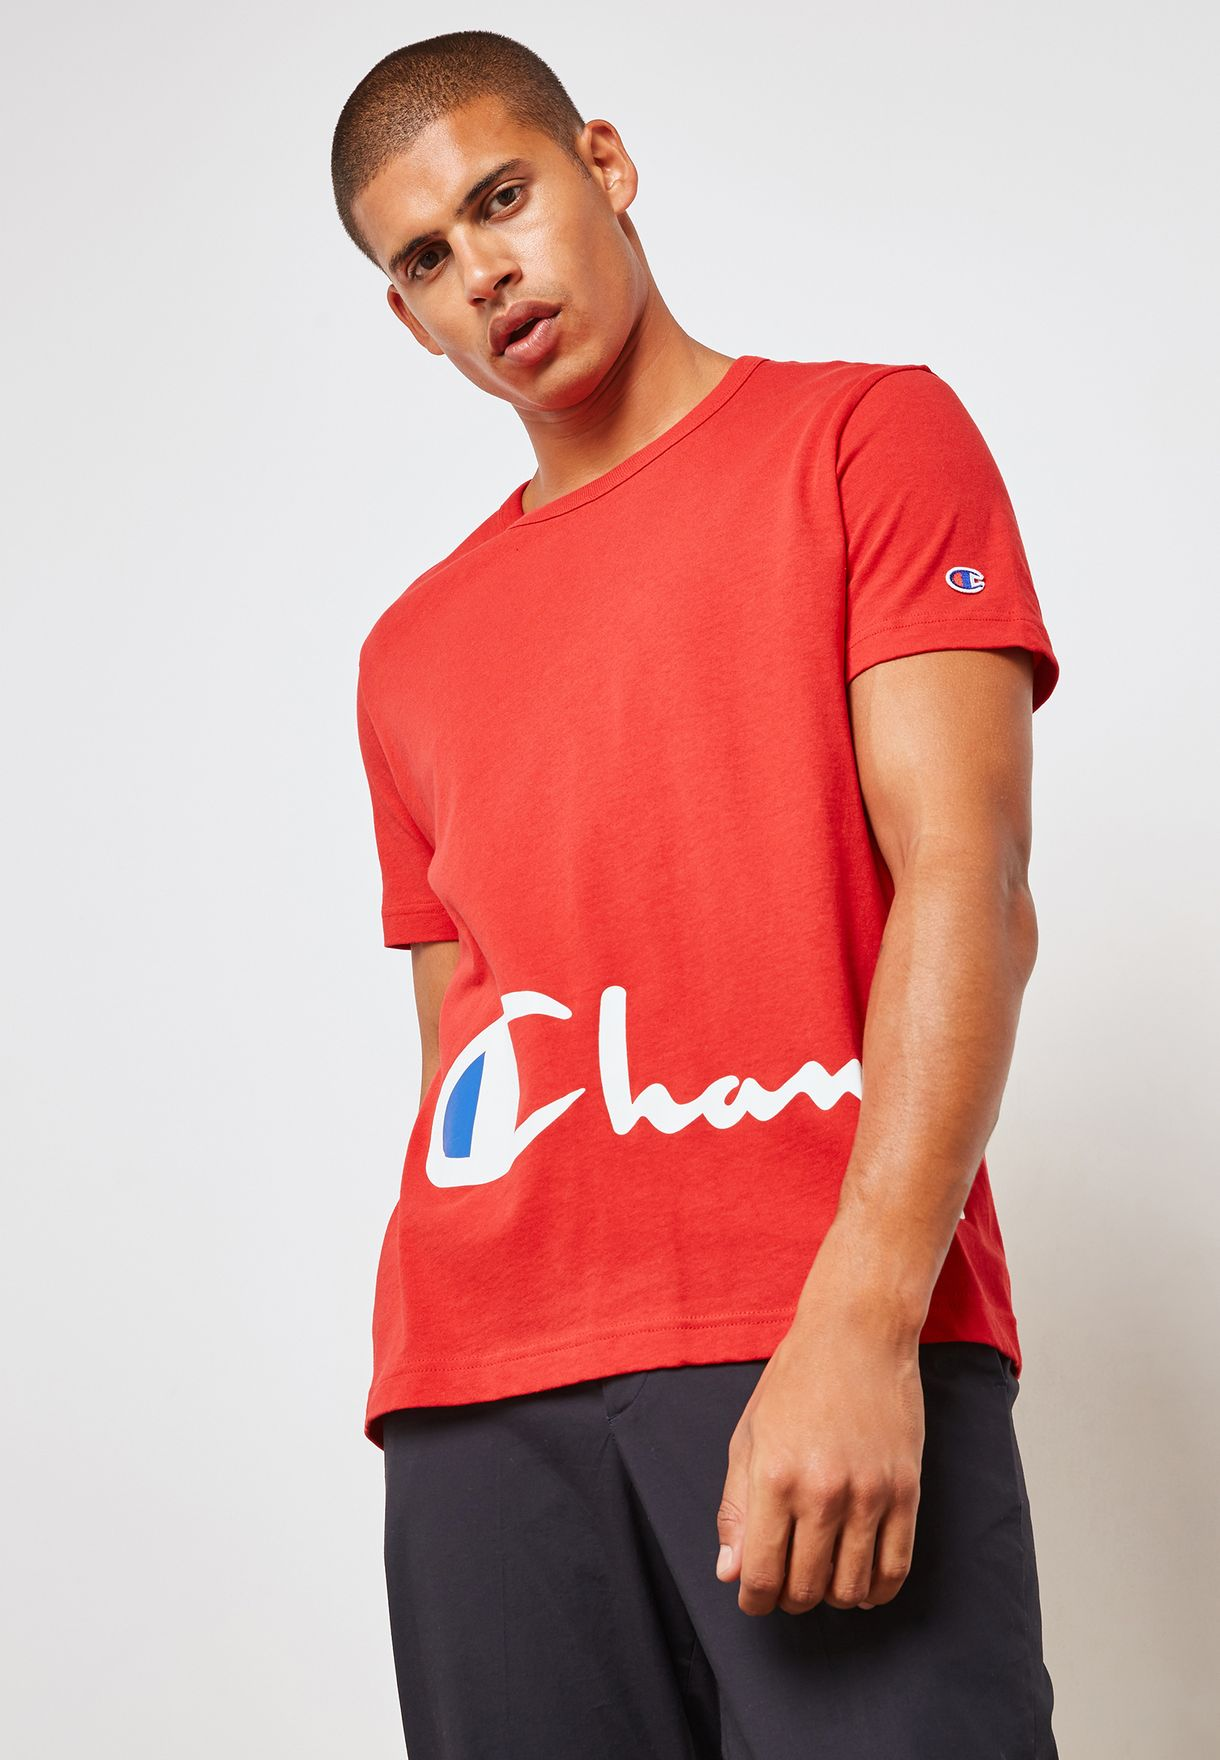 eedc473a Shop Champion red Big Script Logo T-shirt 212380-RS001 for Men in ...